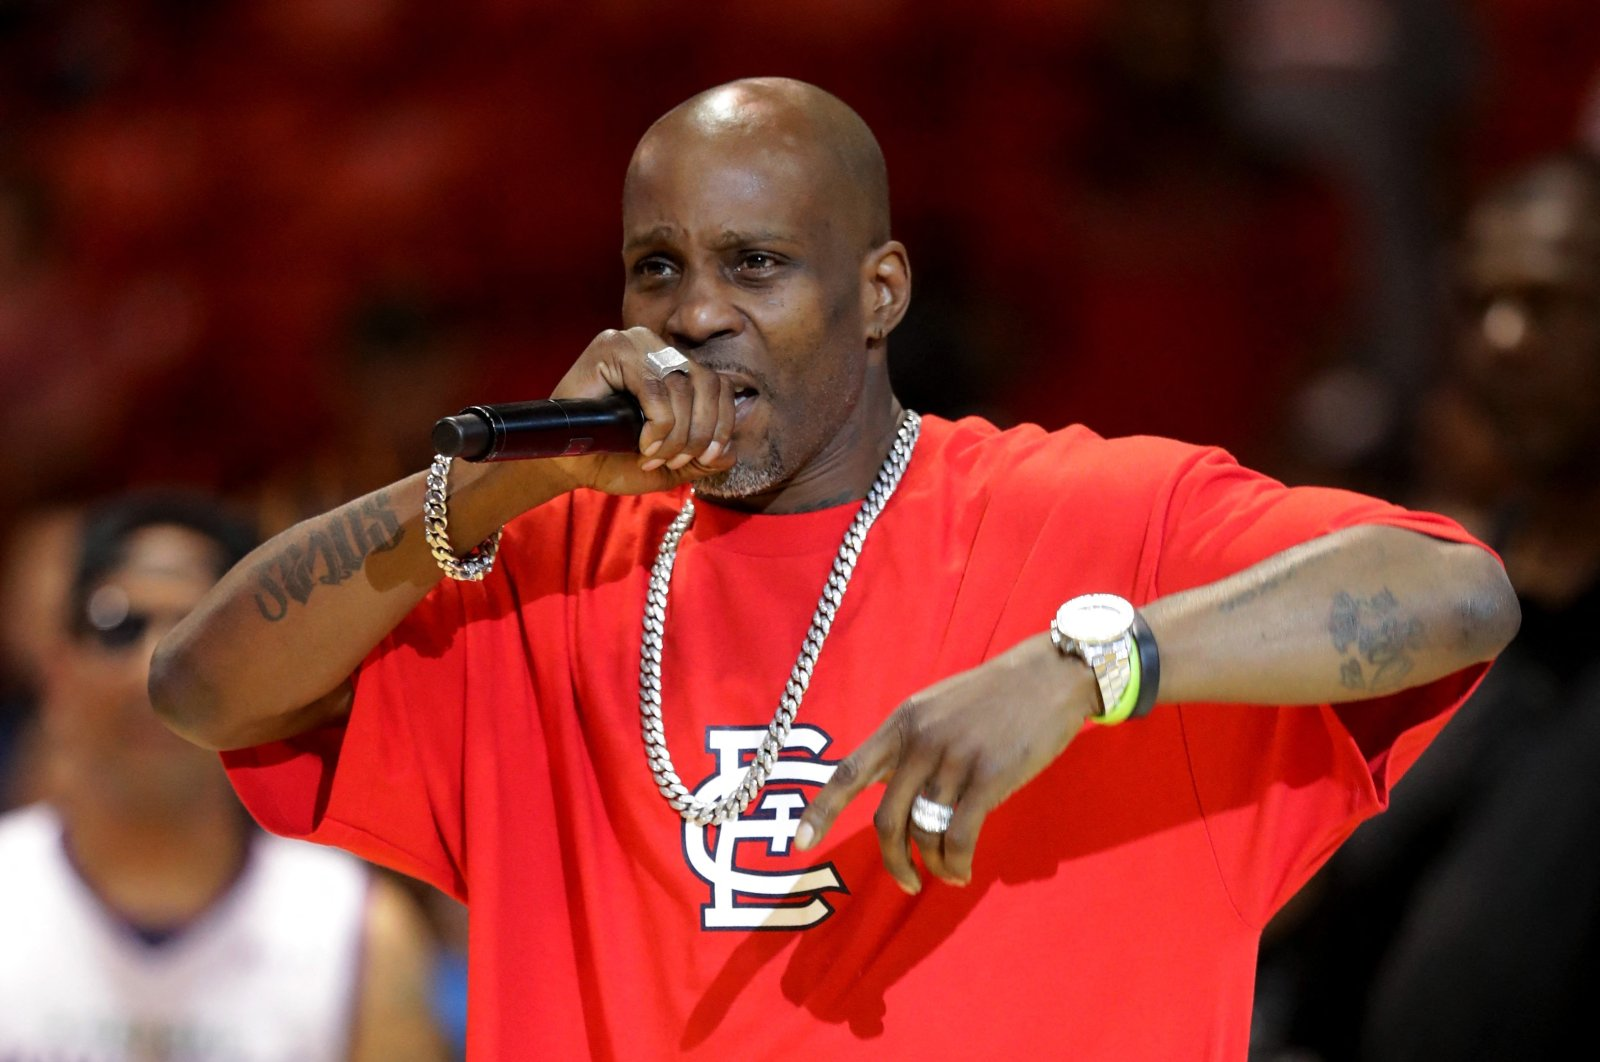 Rapper DMX performs during a concert at the UIC Pavilion in Chicago, U.S., July 23, 2017. (AFP Photo)